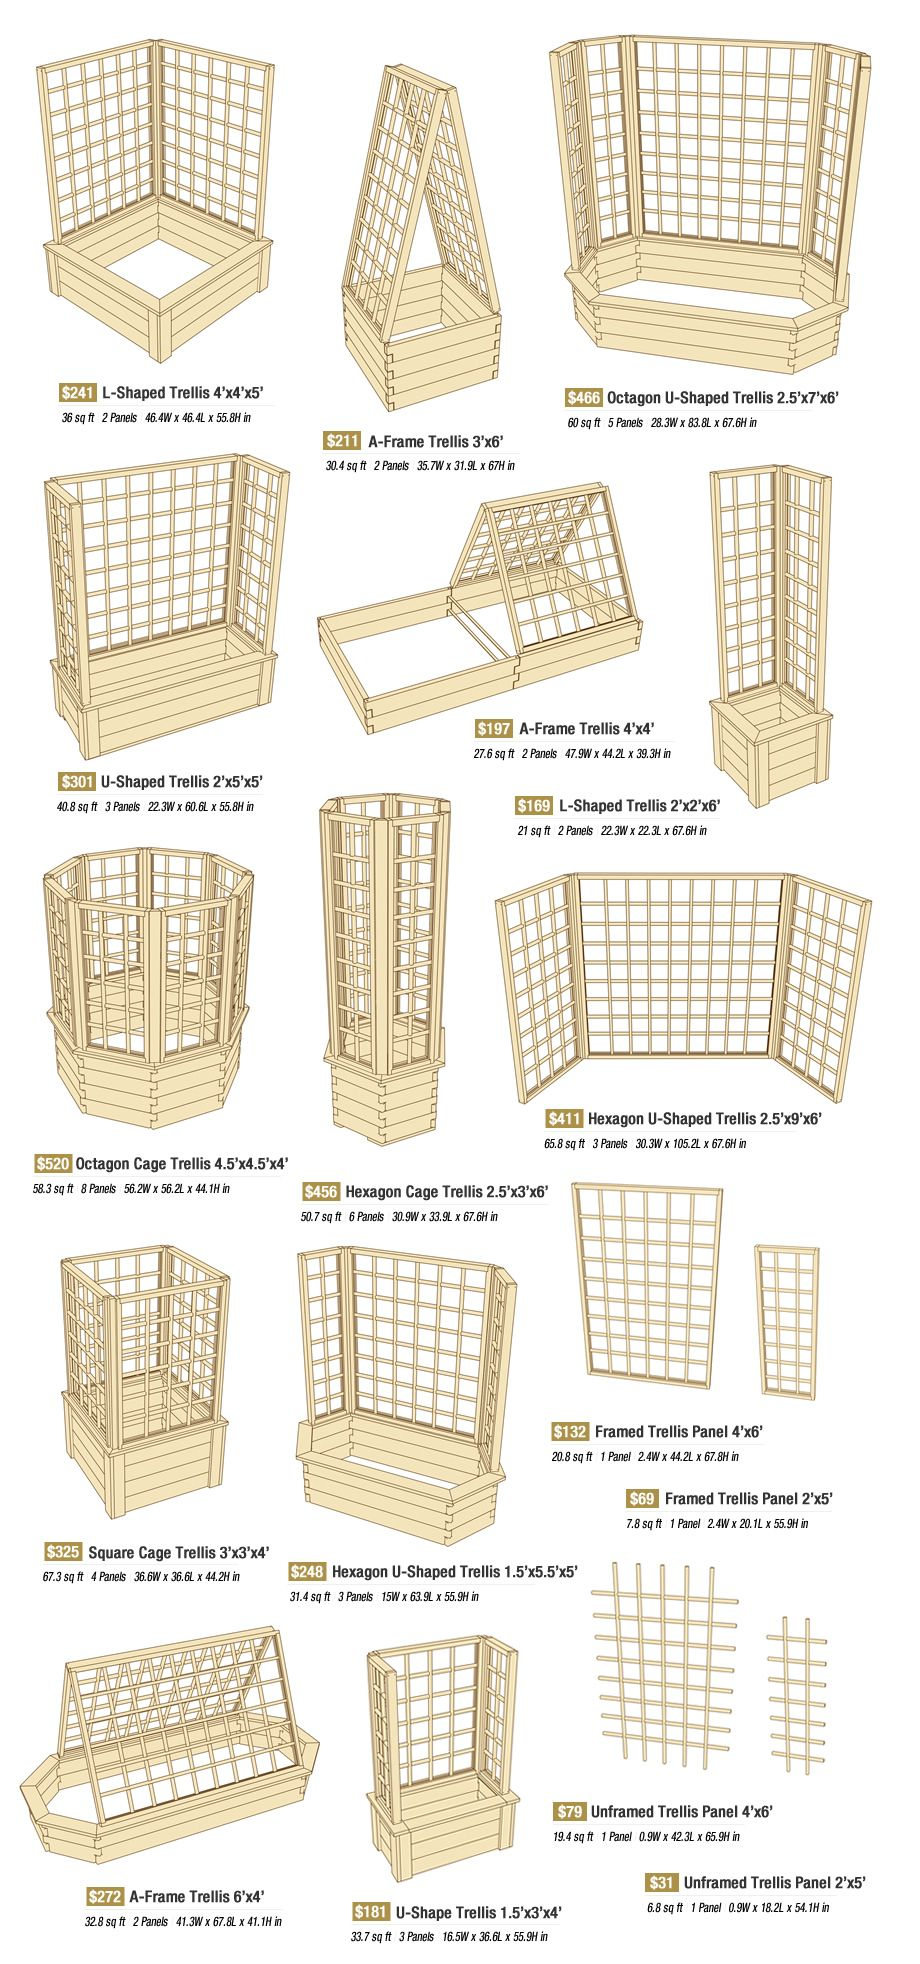 Trellises are available in many shapes and sizes